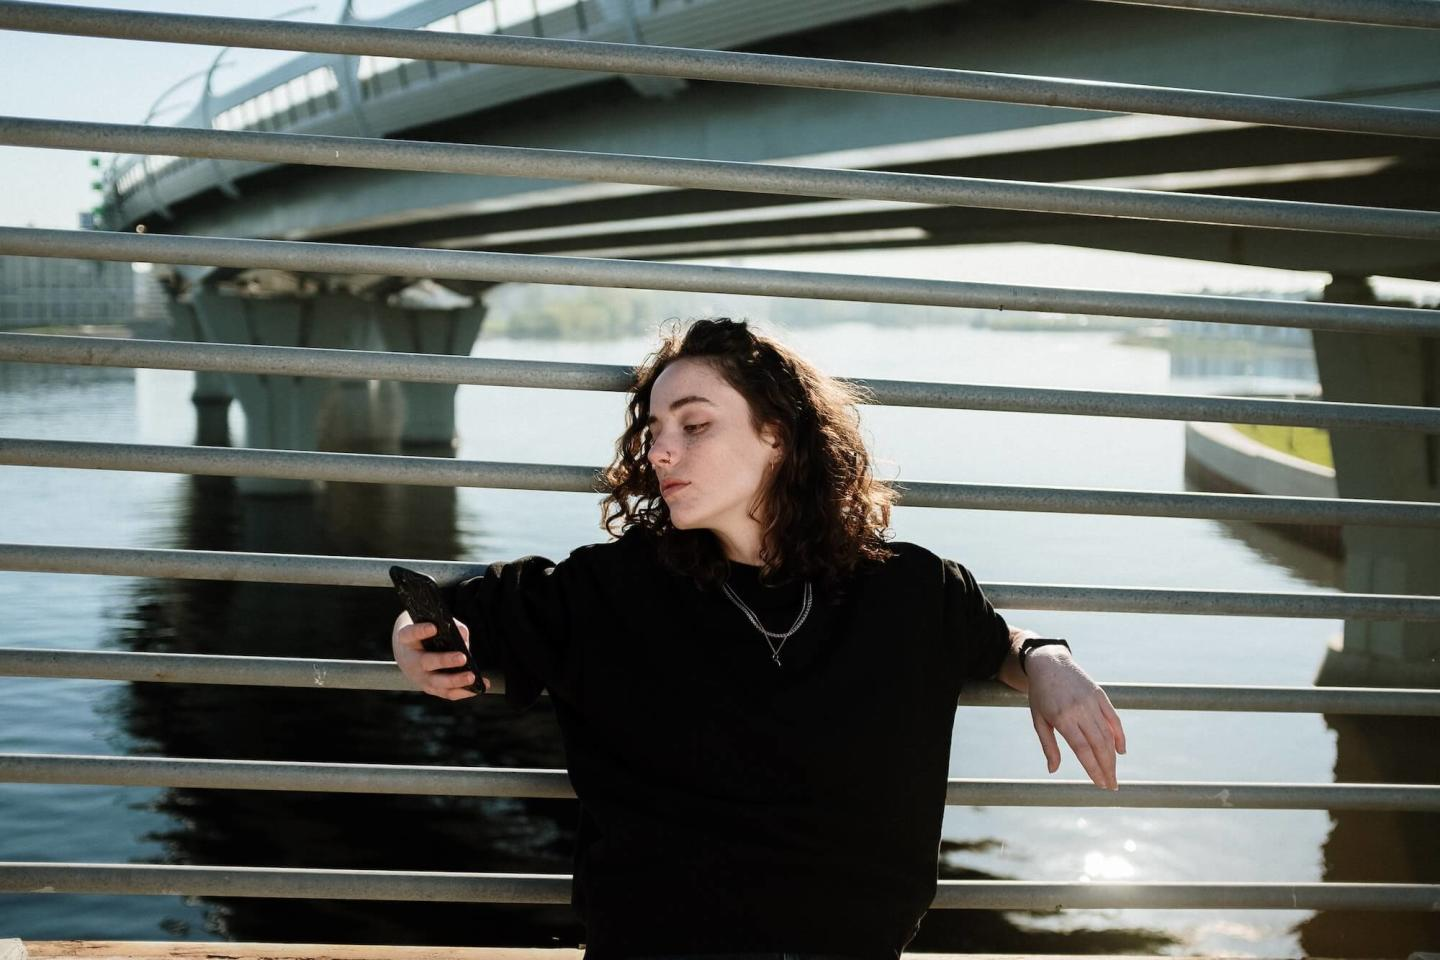 Person looking at phone while leaning on railing